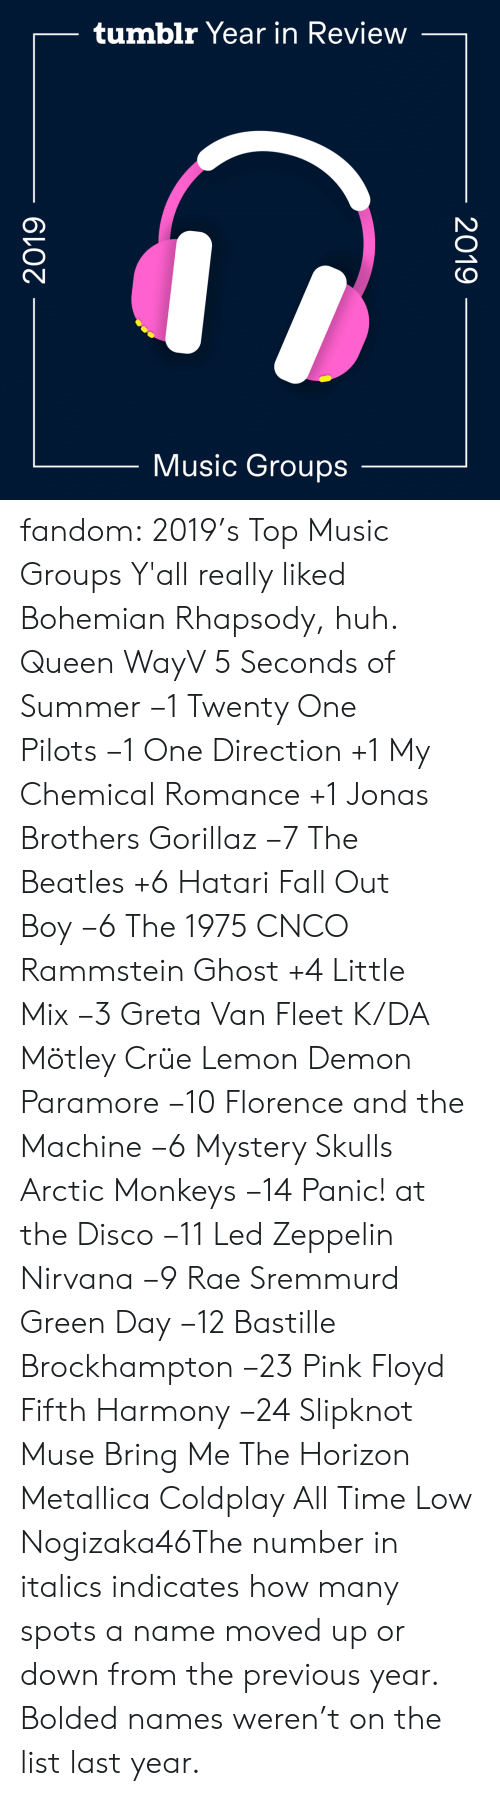 All Time: tumblr Year in Review  Music Groups  2019  2019 fandom:  2019's Top Music Groups  Y'all really liked Bohemian Rhapsody, huh.  Queen  WayV  5 Seconds of Summer −1  Twenty One Pilots −1  One Direction +1  My Chemical Romance +1  Jonas Brothers  Gorillaz −7  The Beatles +6  Hatari  Fall Out Boy −6  The 1975  CNCO  Rammstein  Ghost +4  Little Mix −3  Greta Van Fleet  K/DA  Mötley Crüe  Lemon Demon  Paramore −10  Florence and the Machine −6  Mystery Skulls  Arctic Monkeys −14  Panic! at the Disco −11  Led Zeppelin   Nirvana −9  Rae Sremmurd  Green Day −12  Bastille  Brockhampton −23  Pink Floyd  Fifth Harmony −24  Slipknot  Muse  Bring Me The Horizon  Metallica  Coldplay  All Time Low  Nogizaka46The number in italics indicates how many spots a name moved up or down from the previous year. Bolded names weren't on the list last year.